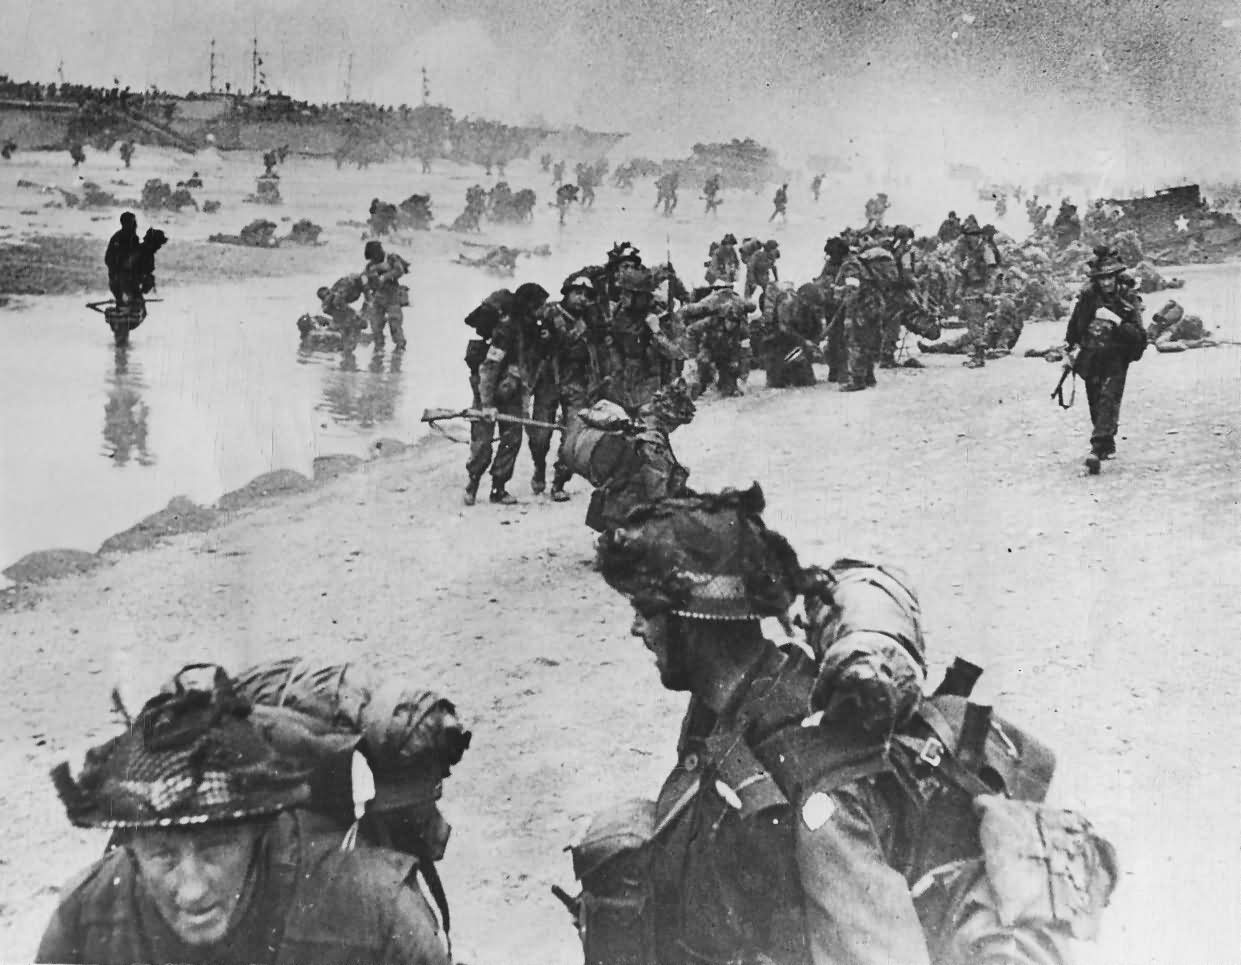 British Troops On Normandy Beach D-Day 1944